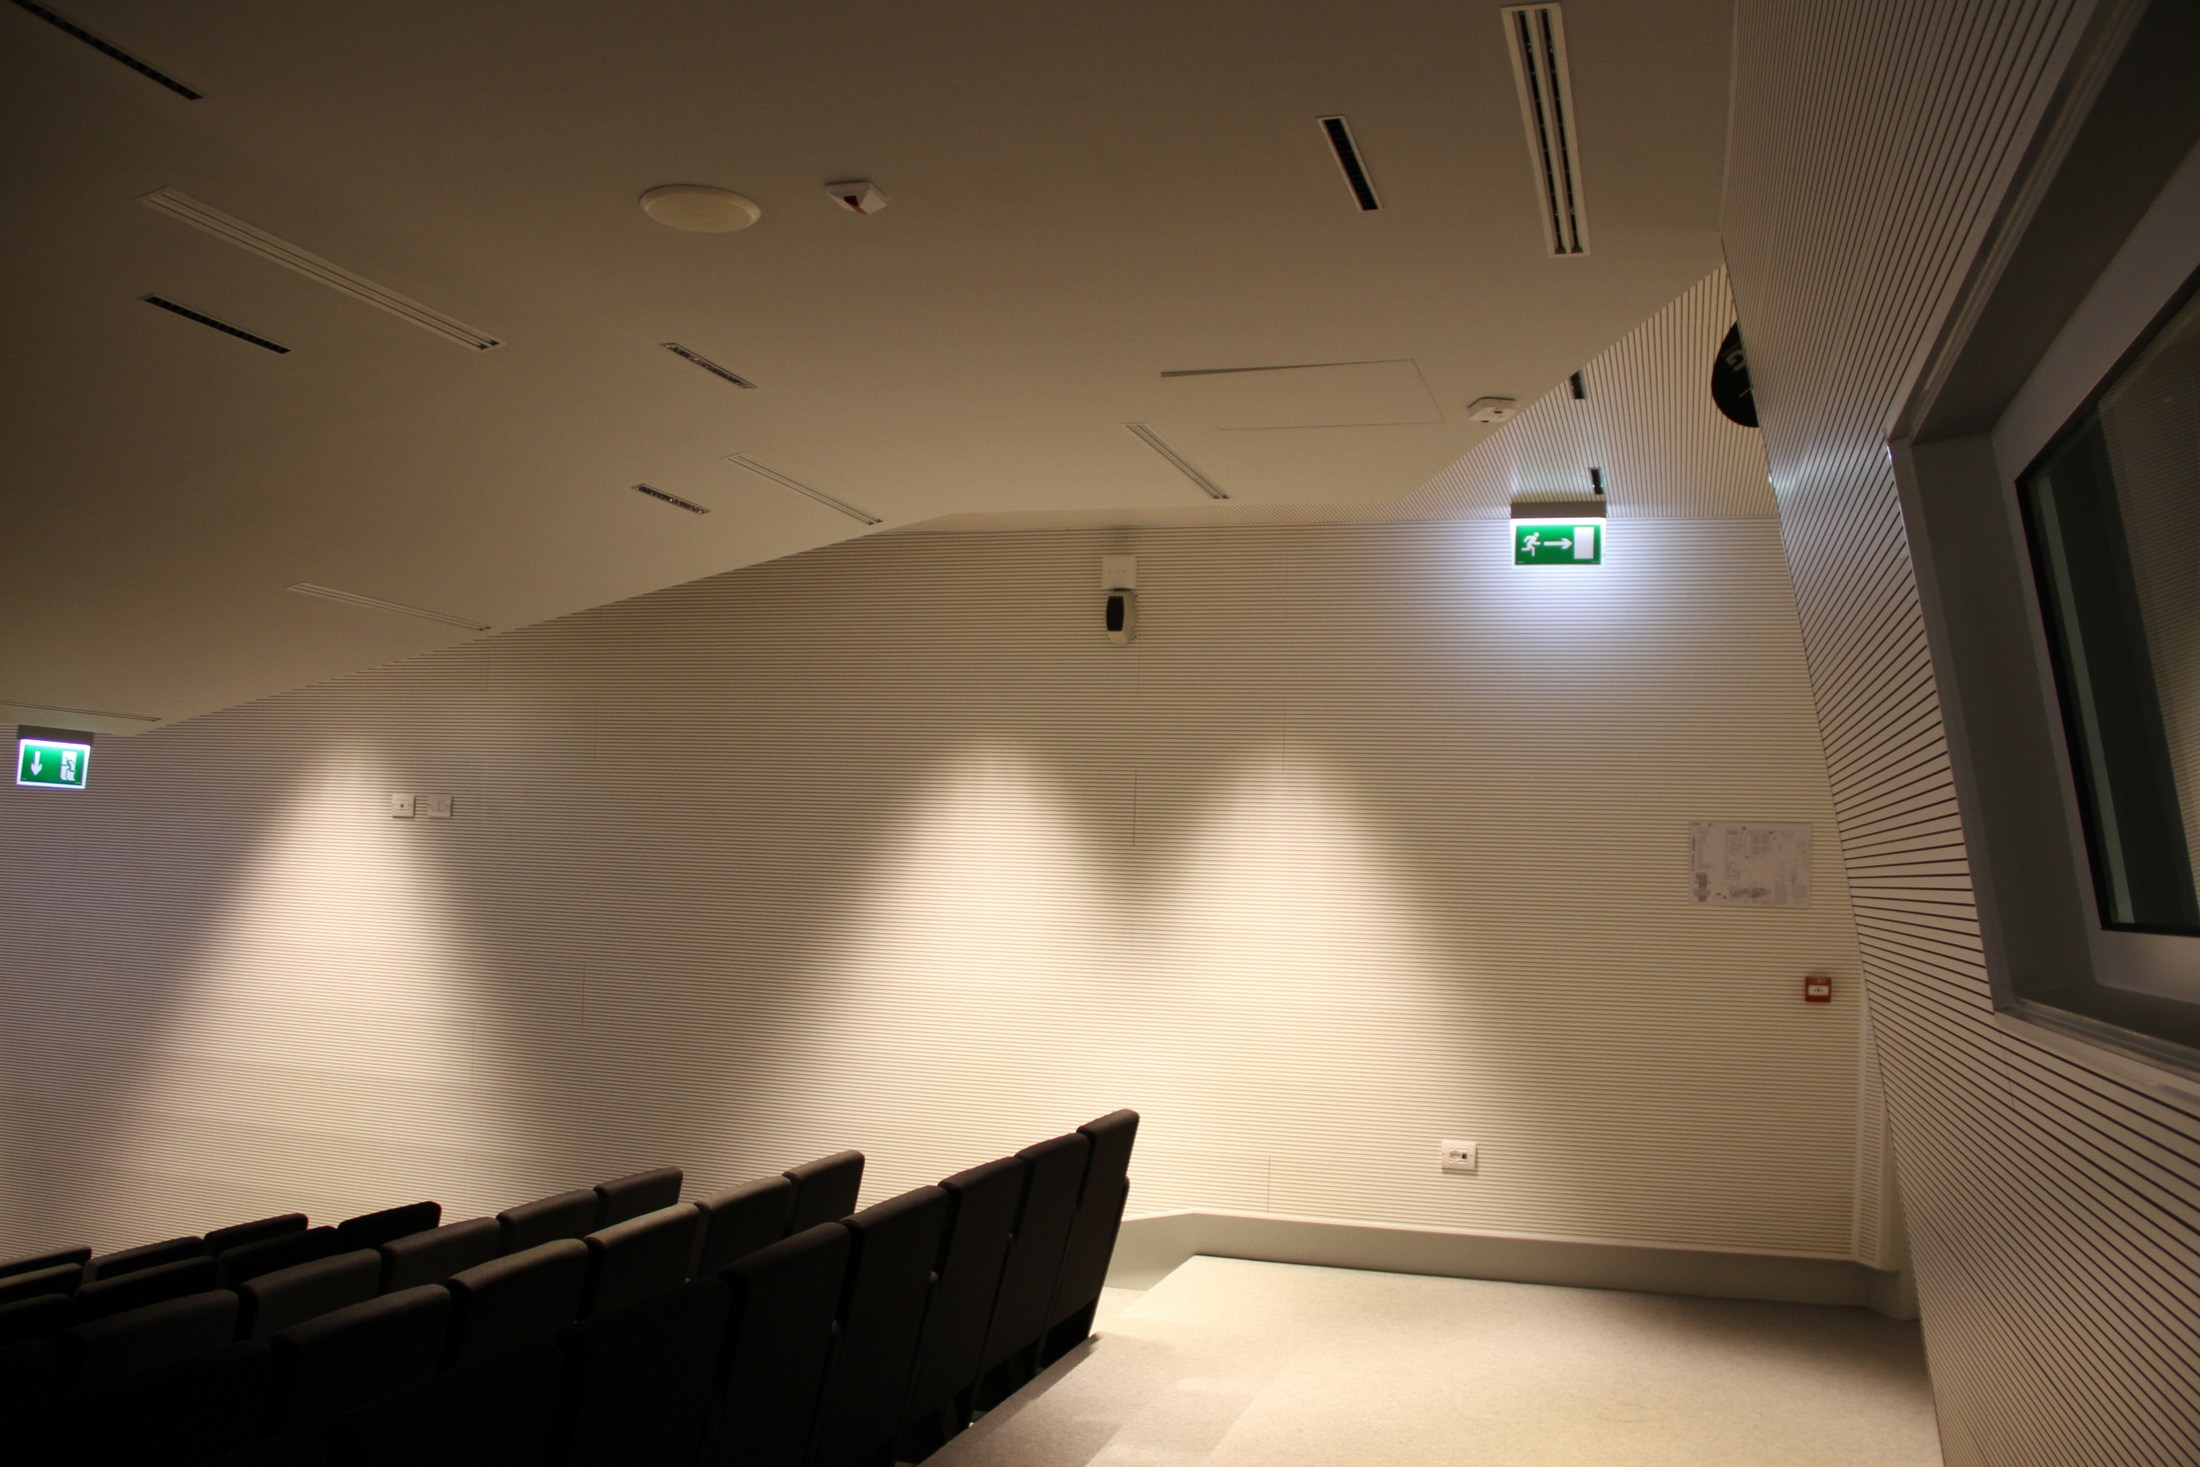 Sound ceiling tiles